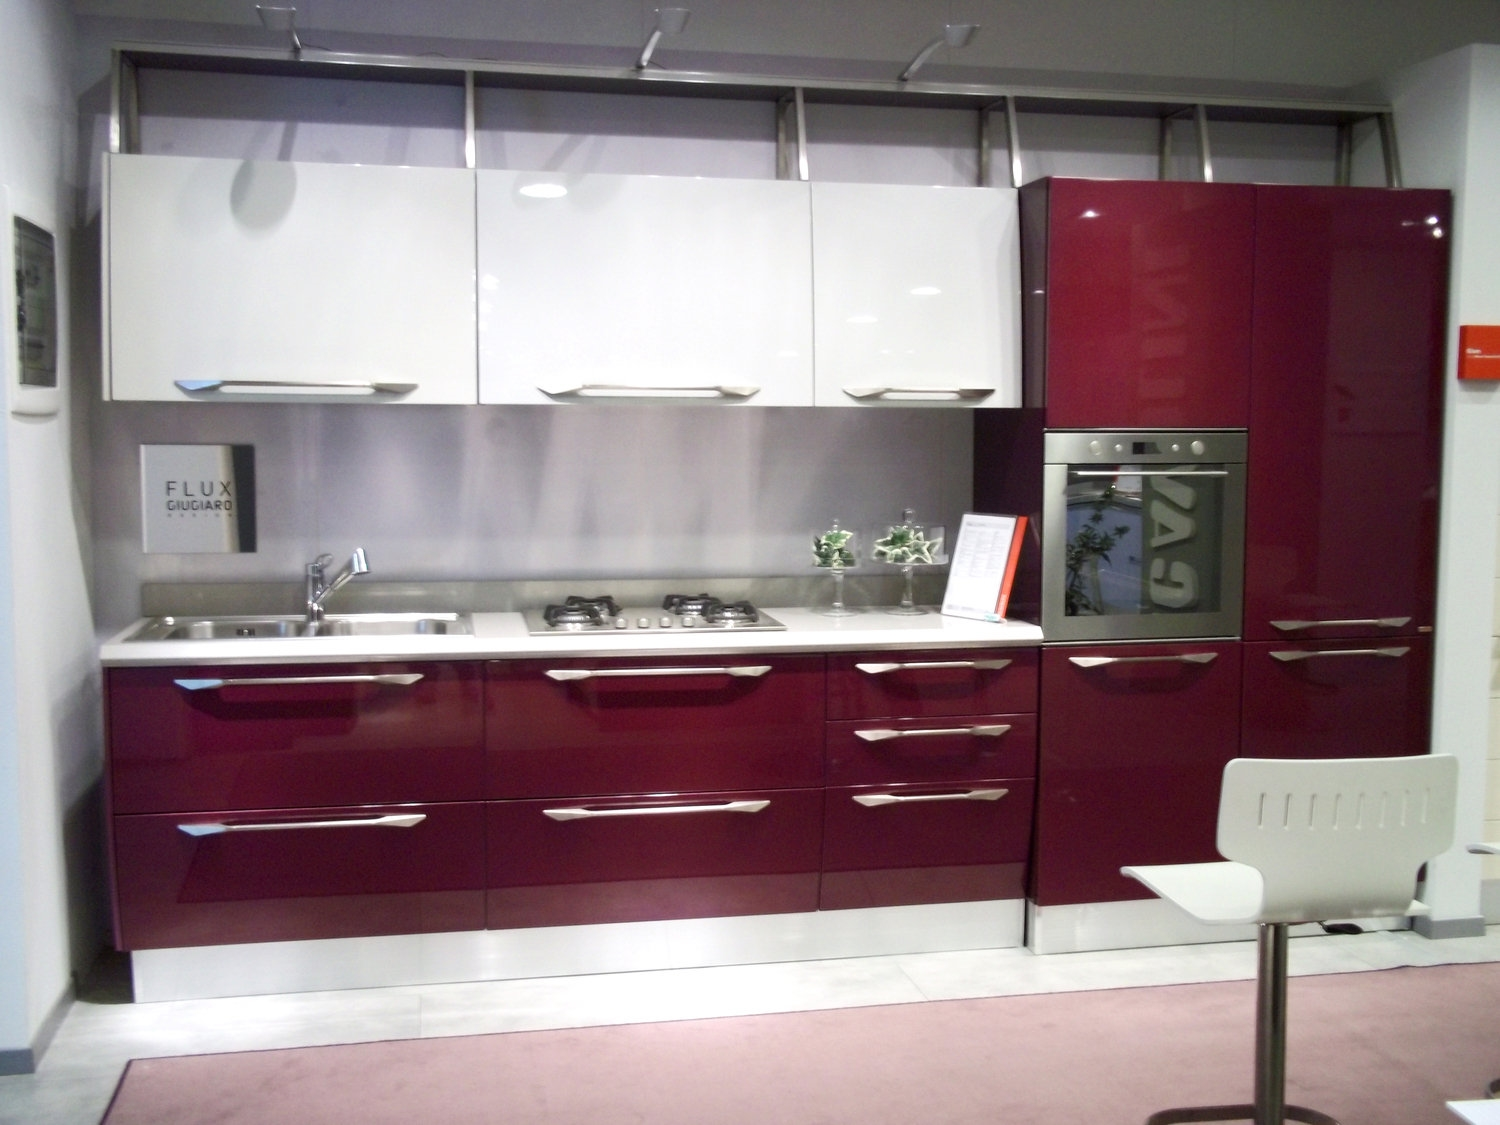 Outlet cucine lombardia cheap beautiful corso o outlet for Outlet cucine lombardia